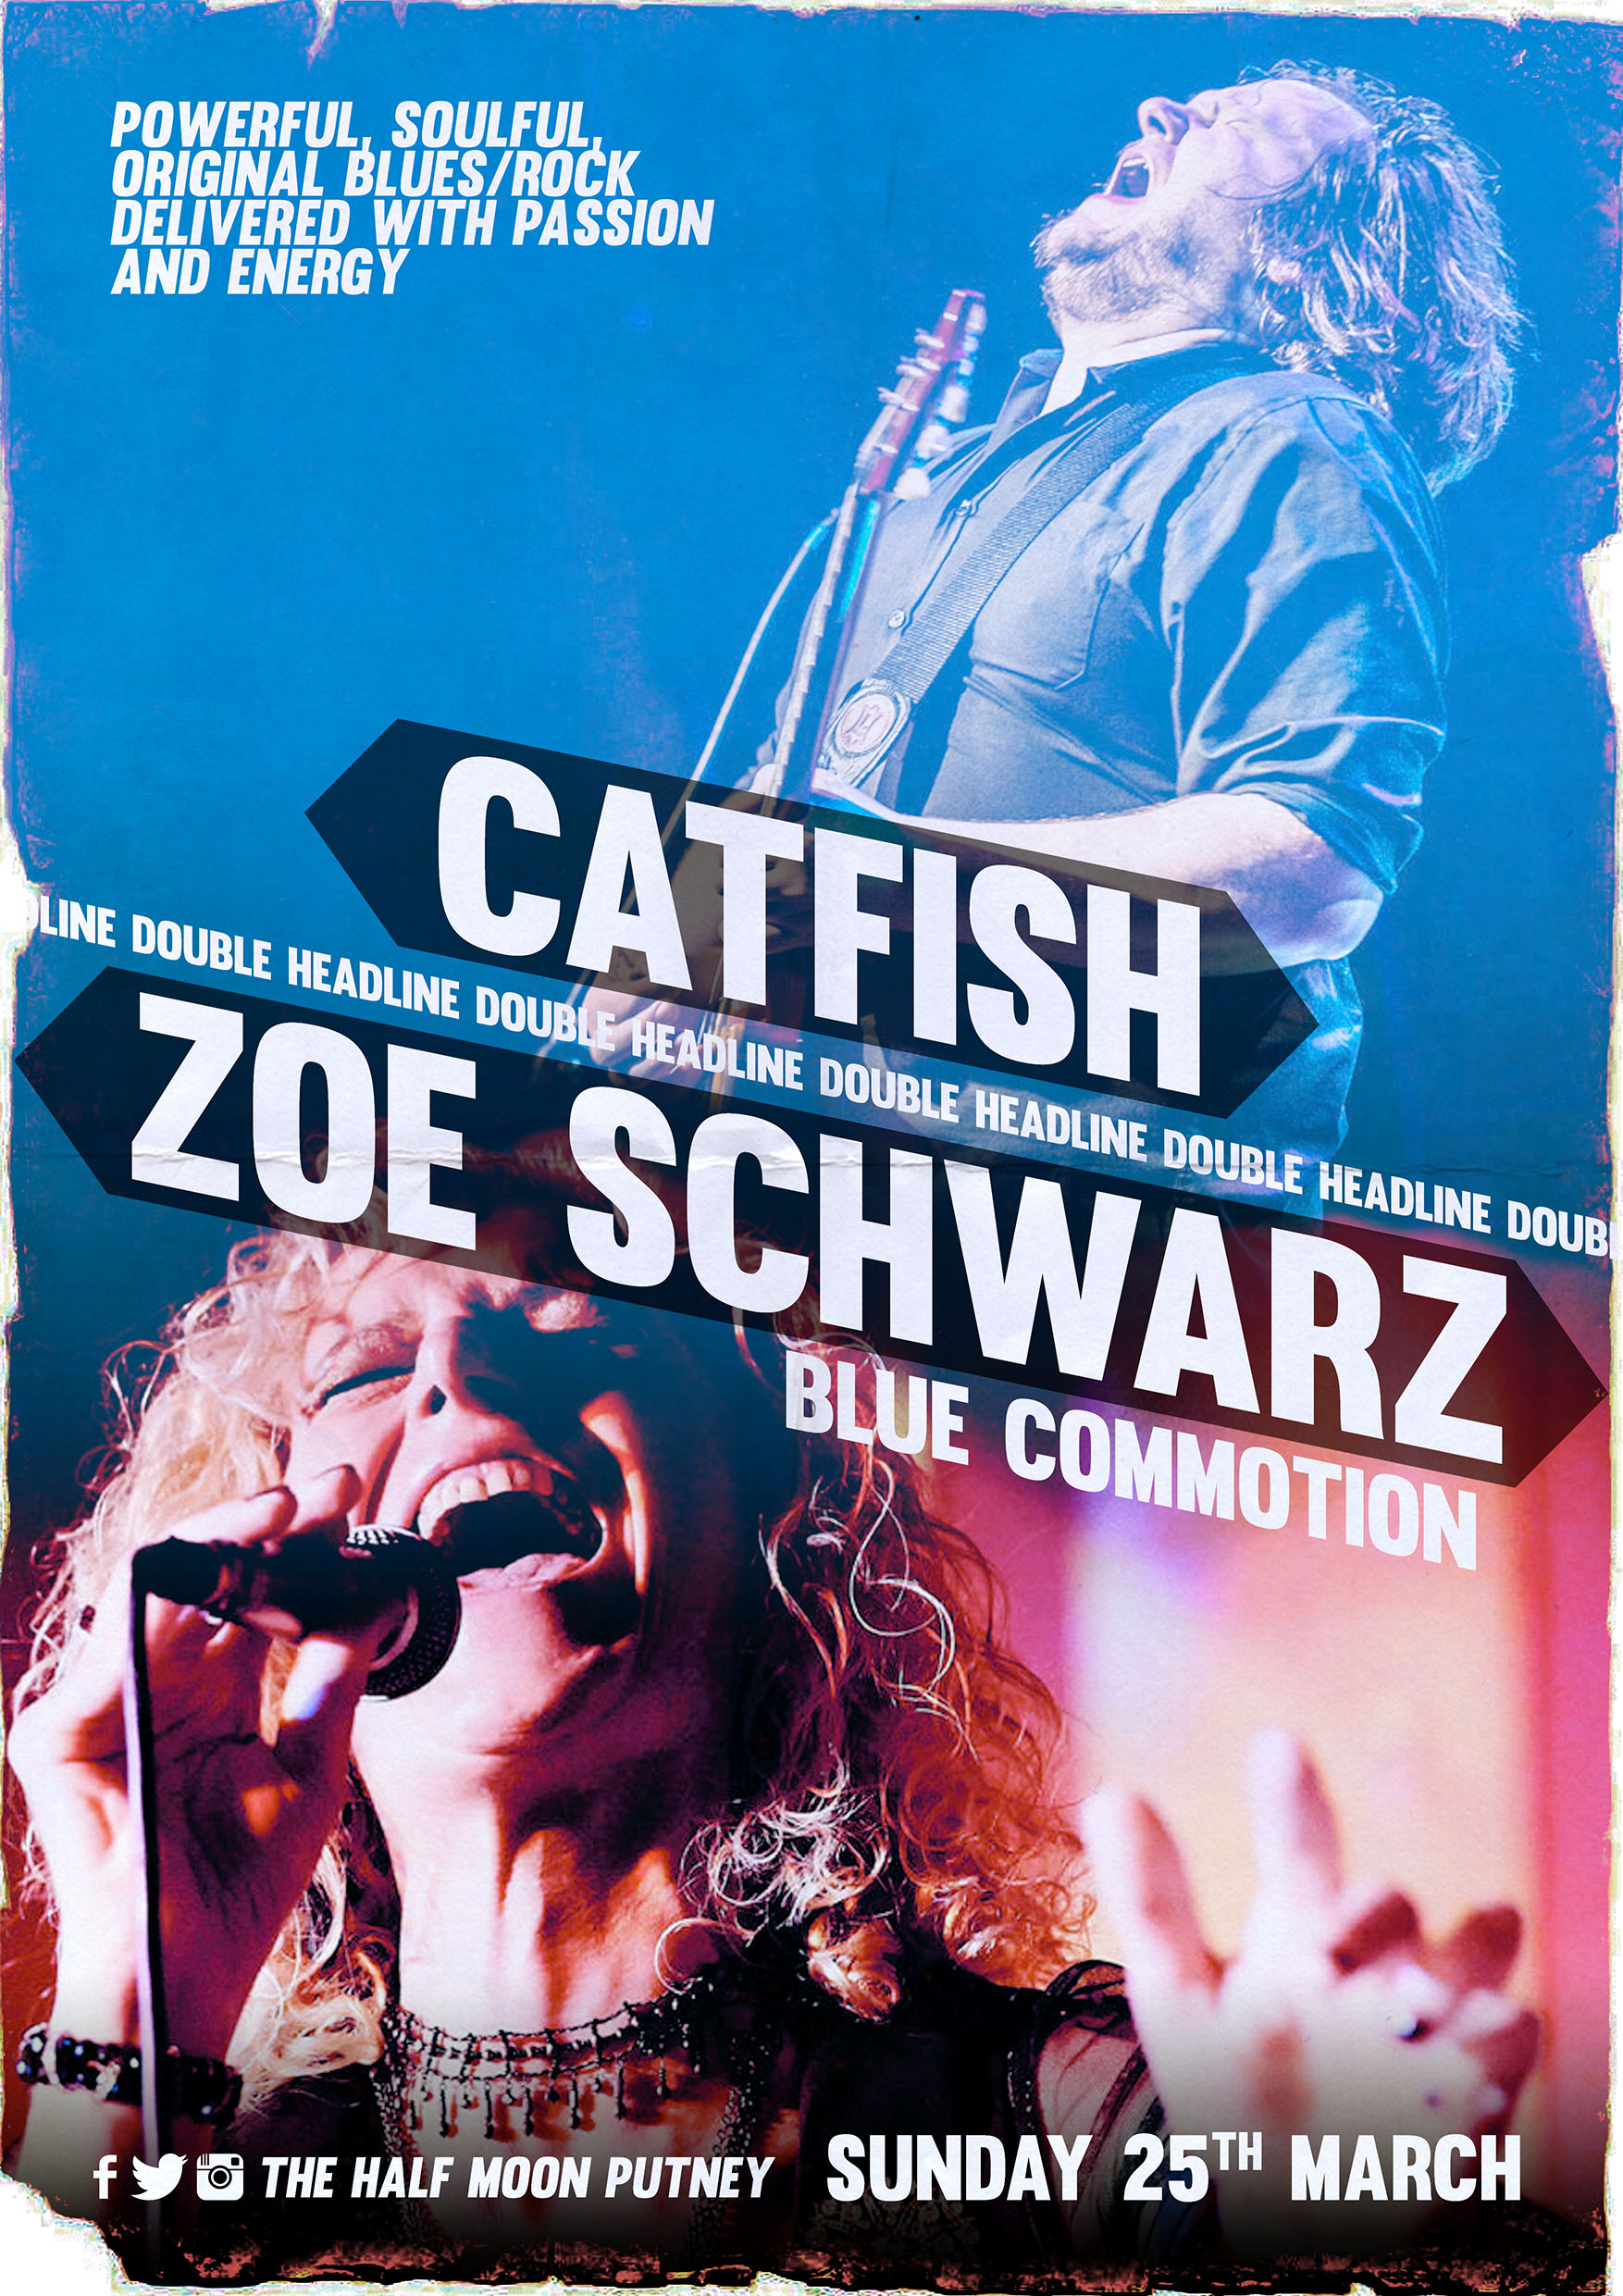 Zoe Schwarz Blue Commotion and Catfish play in London